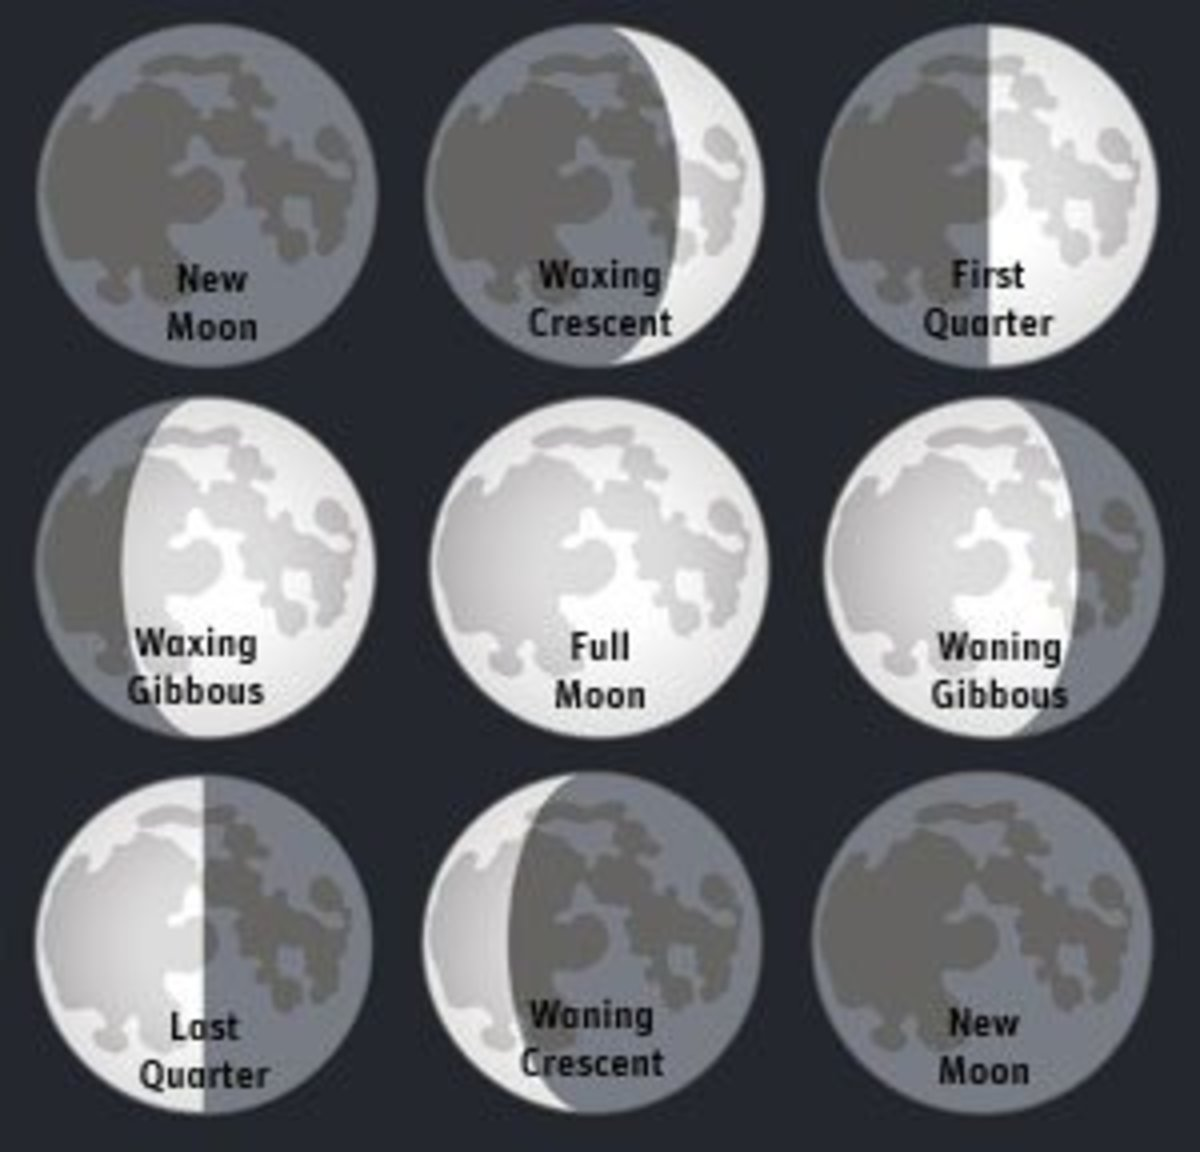 hight resolution of Phases Of The Moon - Lessons - Blendspace